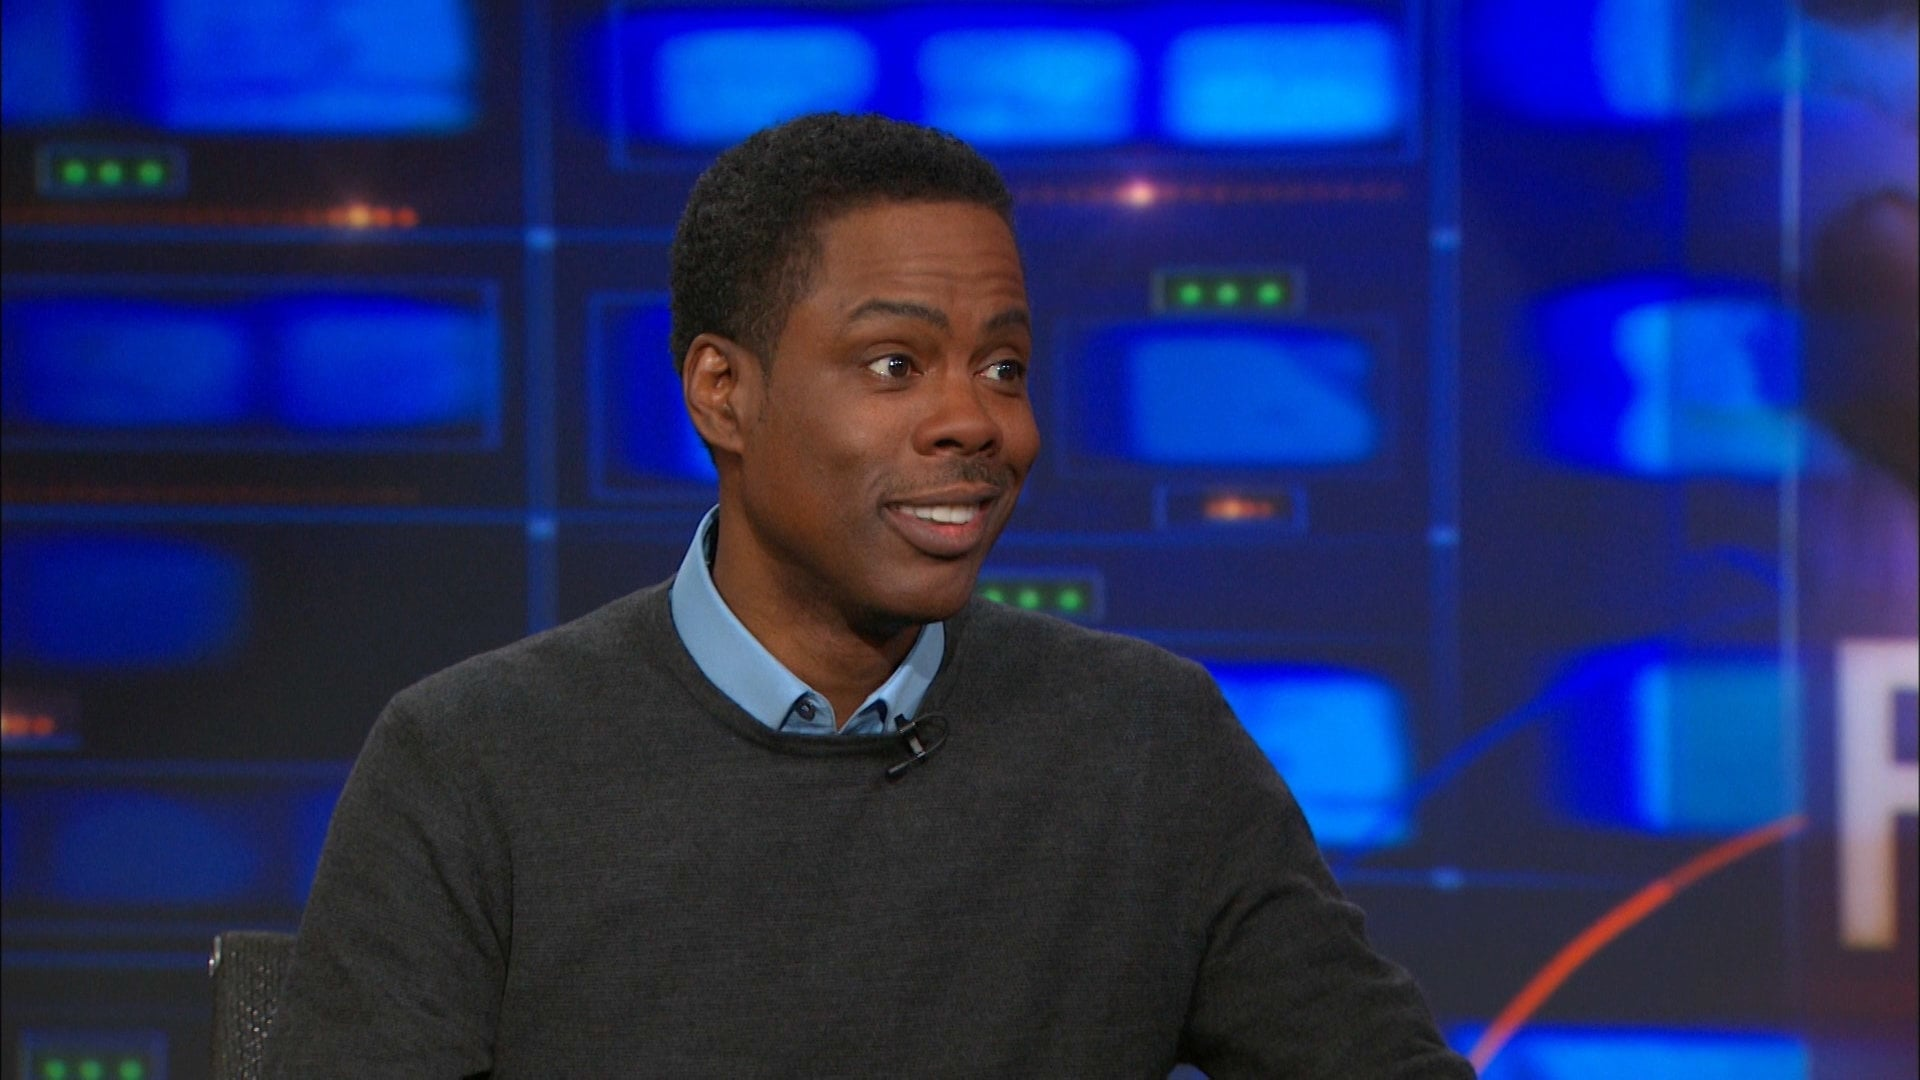 The Daily Show with Trevor Noah - Season 20 Episode 40 : Chris Rock (1970)